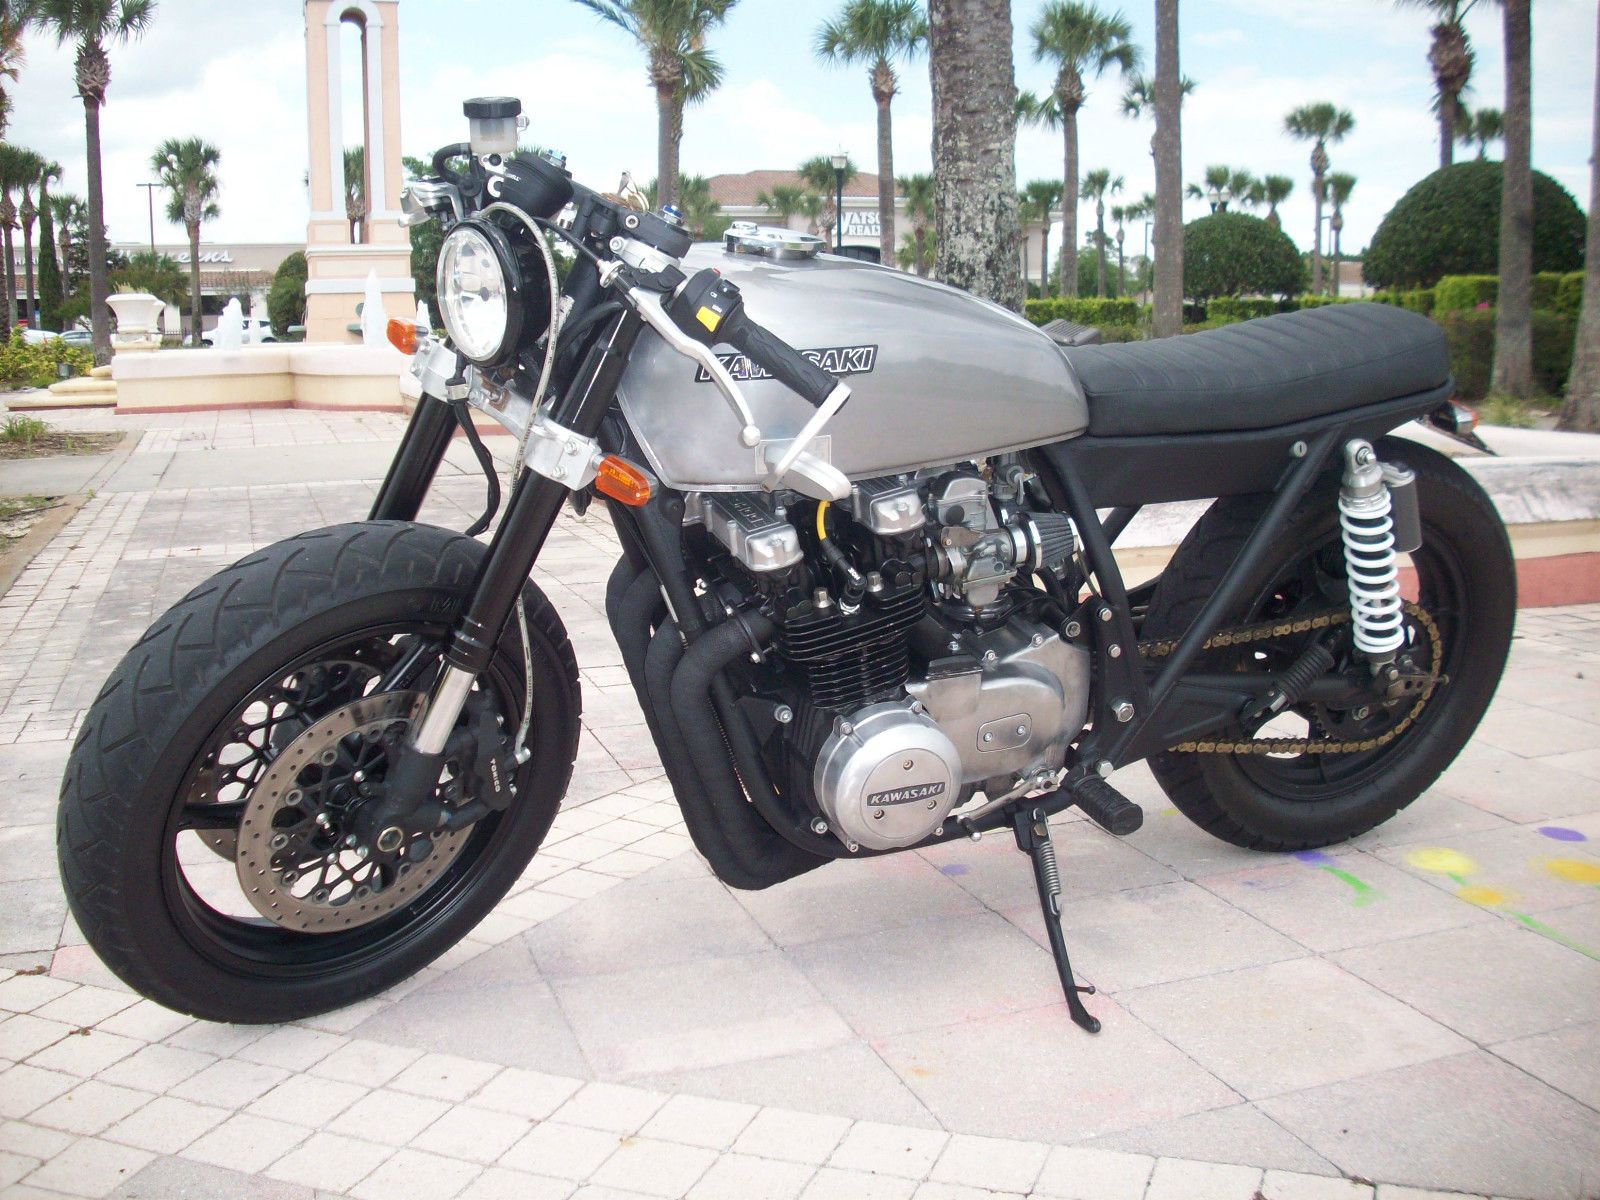 1978 suzuki gs750 cafe racer google search scrambler. Black Bedroom Furniture Sets. Home Design Ideas